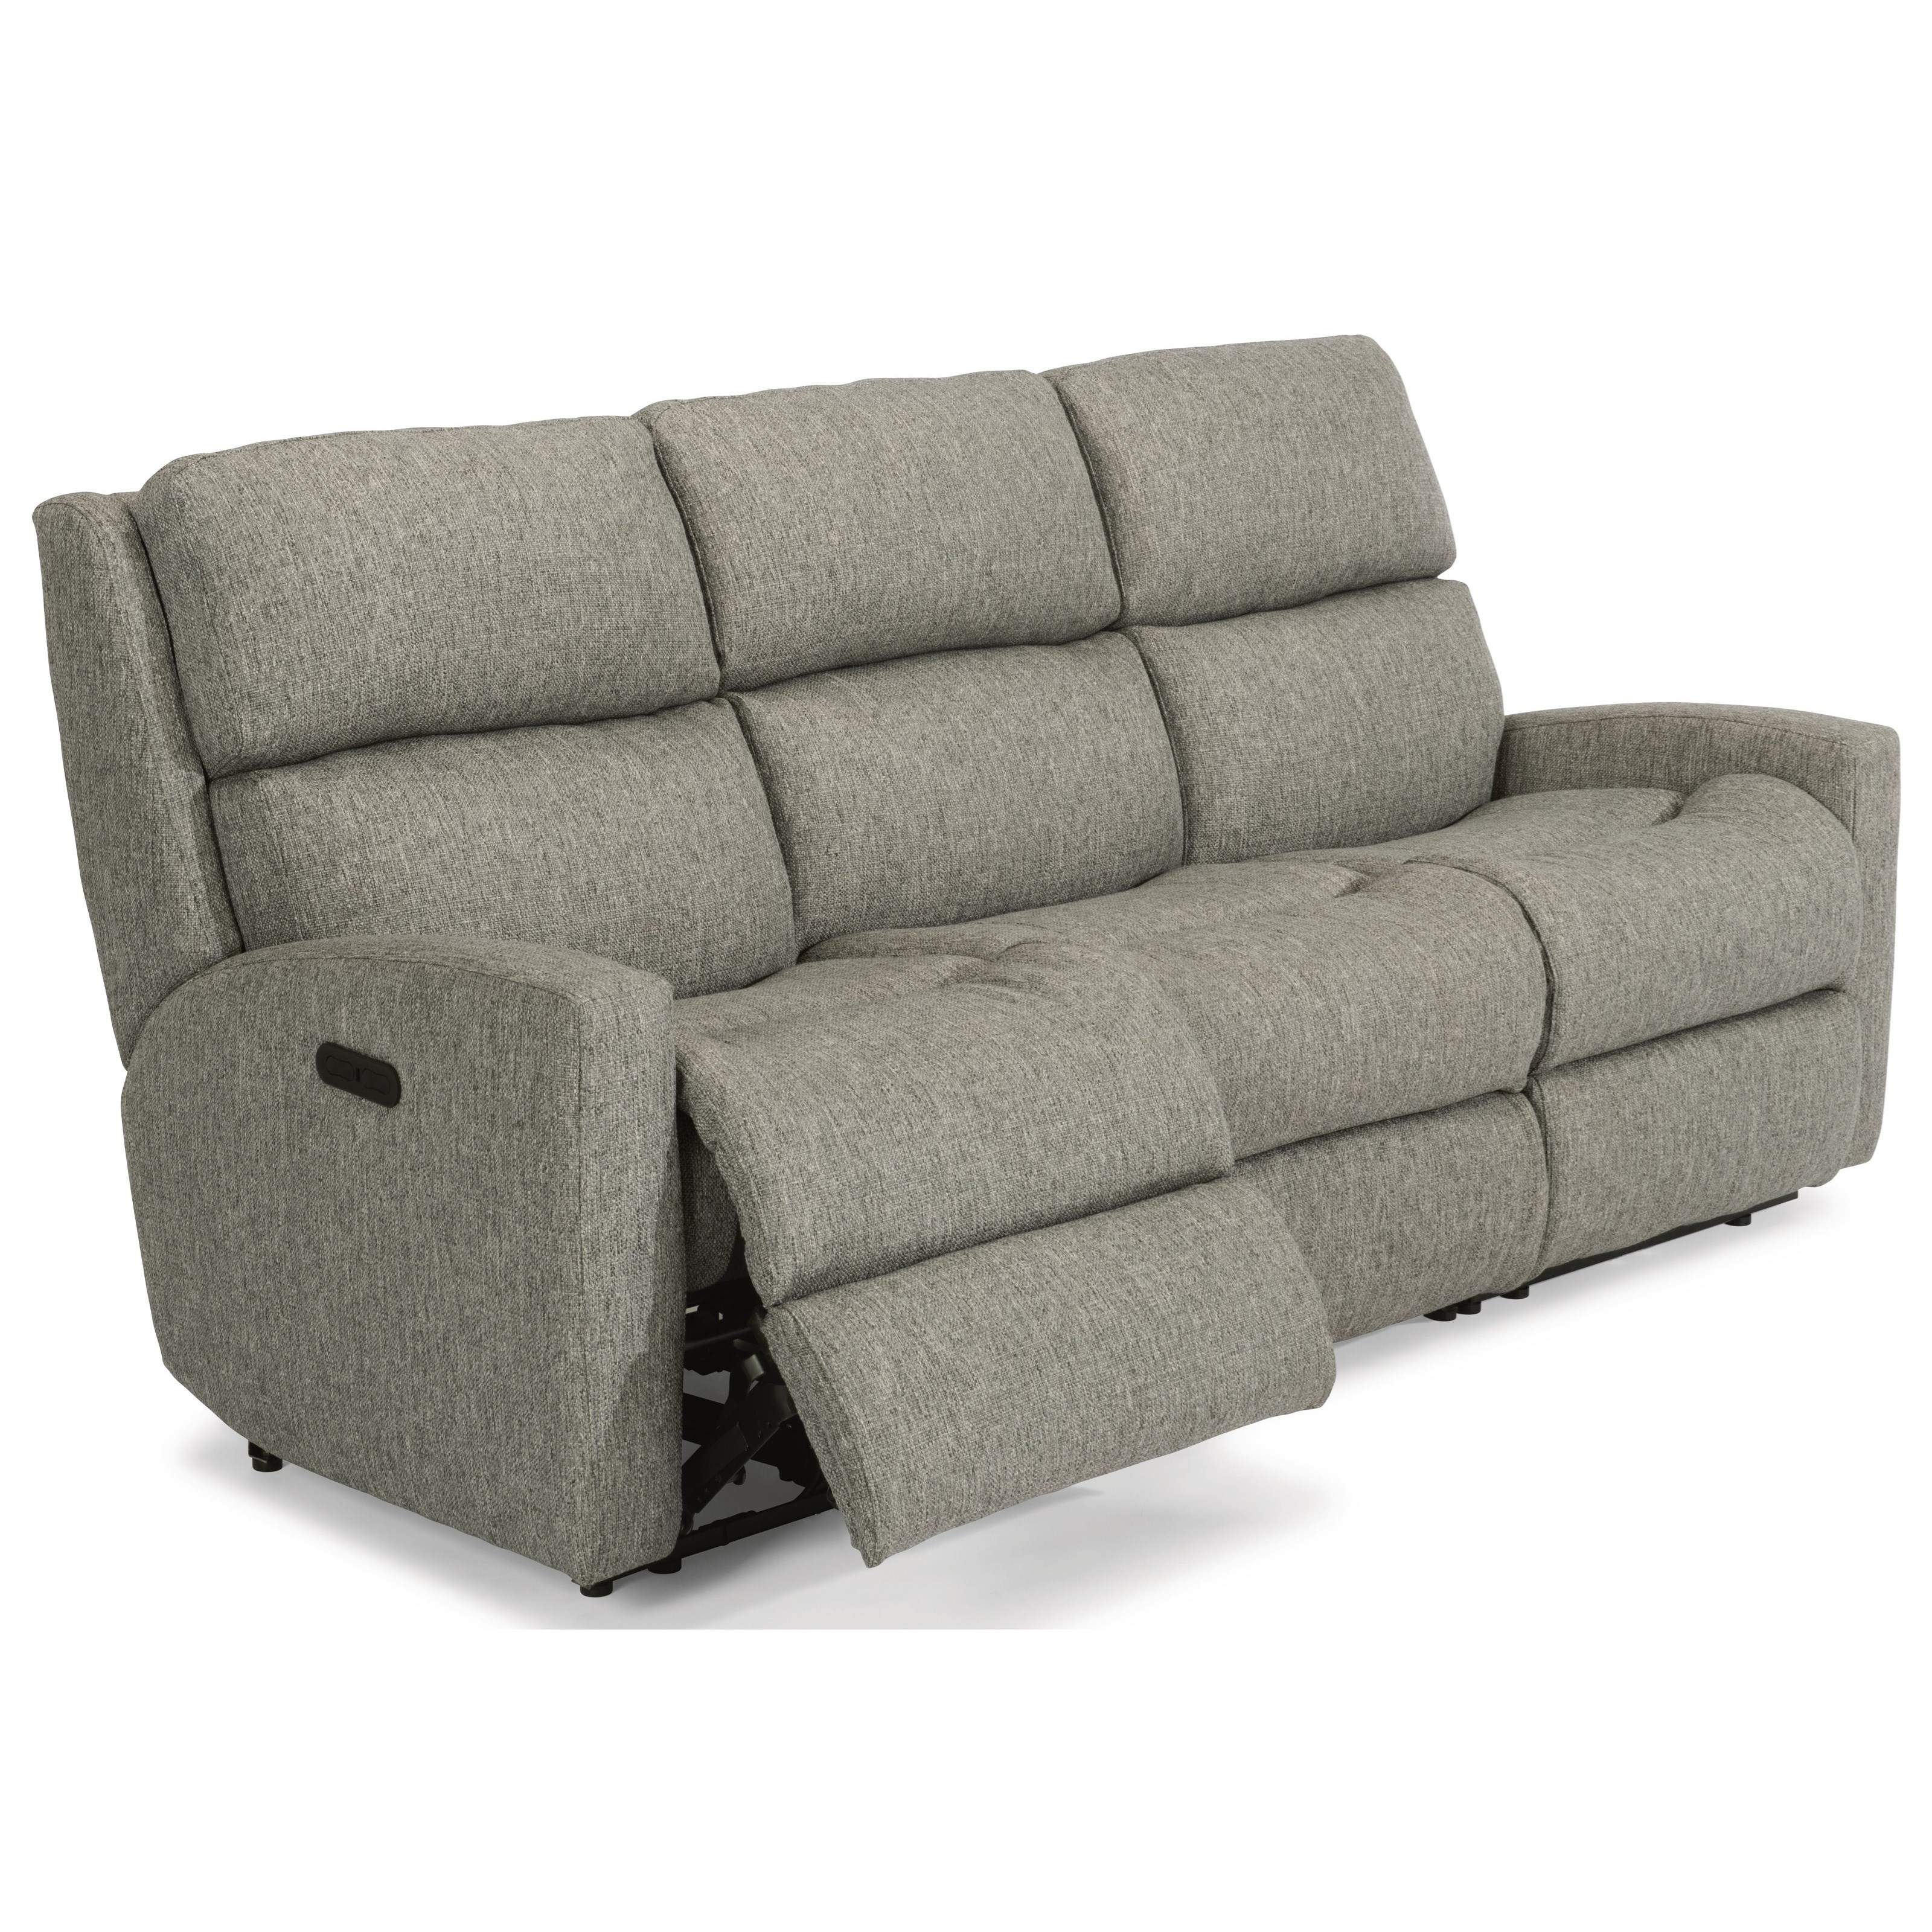 Flex Steel Recliners Leather Sofa With Nailheads